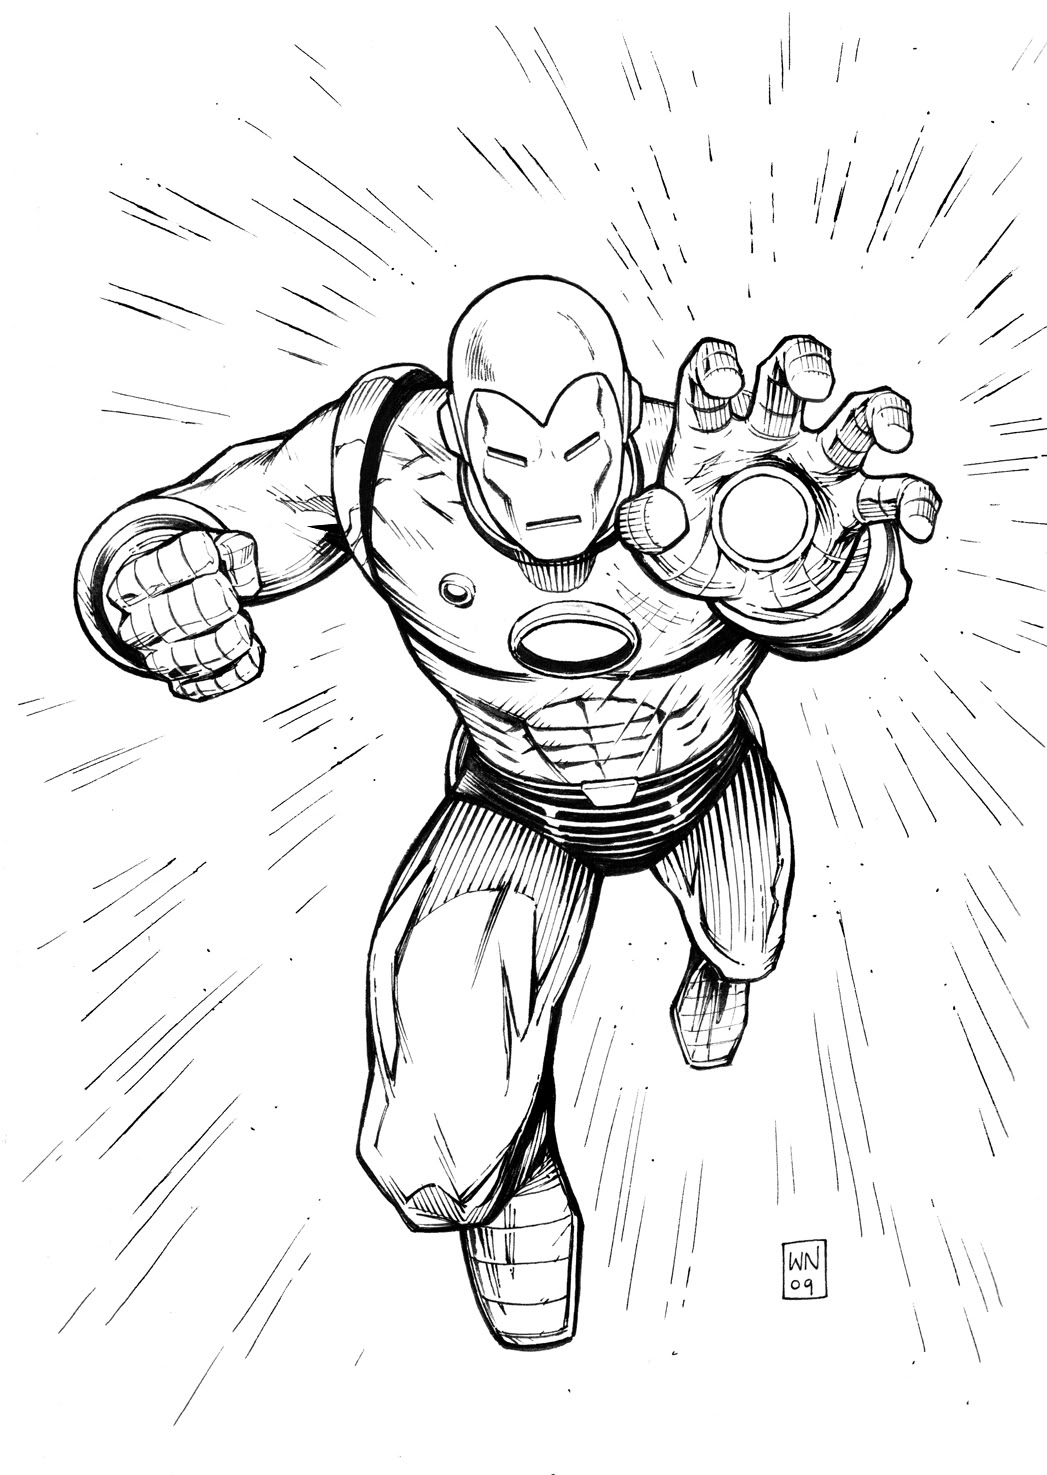 iron man coloring page coloring pages for kids free images iron man avengers coloring man iron page